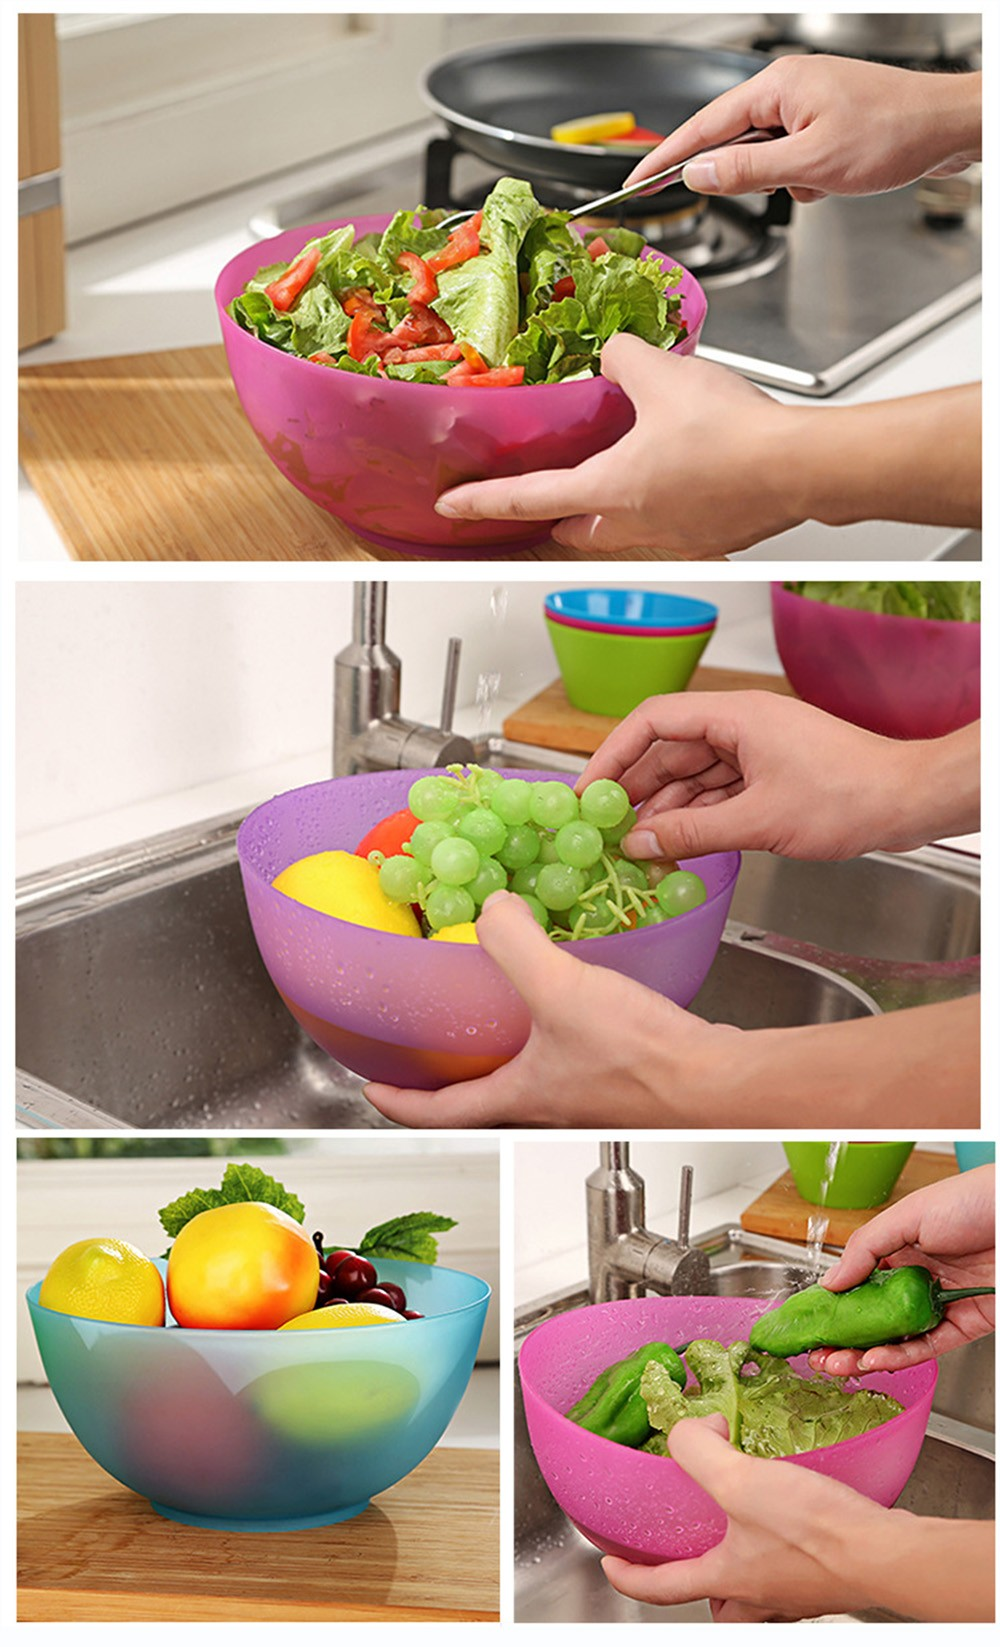 Plastic-Fruit-Bowl-Salad-And-Vegetables-Eco-Friendly-Food-grade-Kitchen-Cooking-Tools-Plastic-Pots-Of-Ice-Cream-Cups-Dessert-Bowls-KC1146 (2)